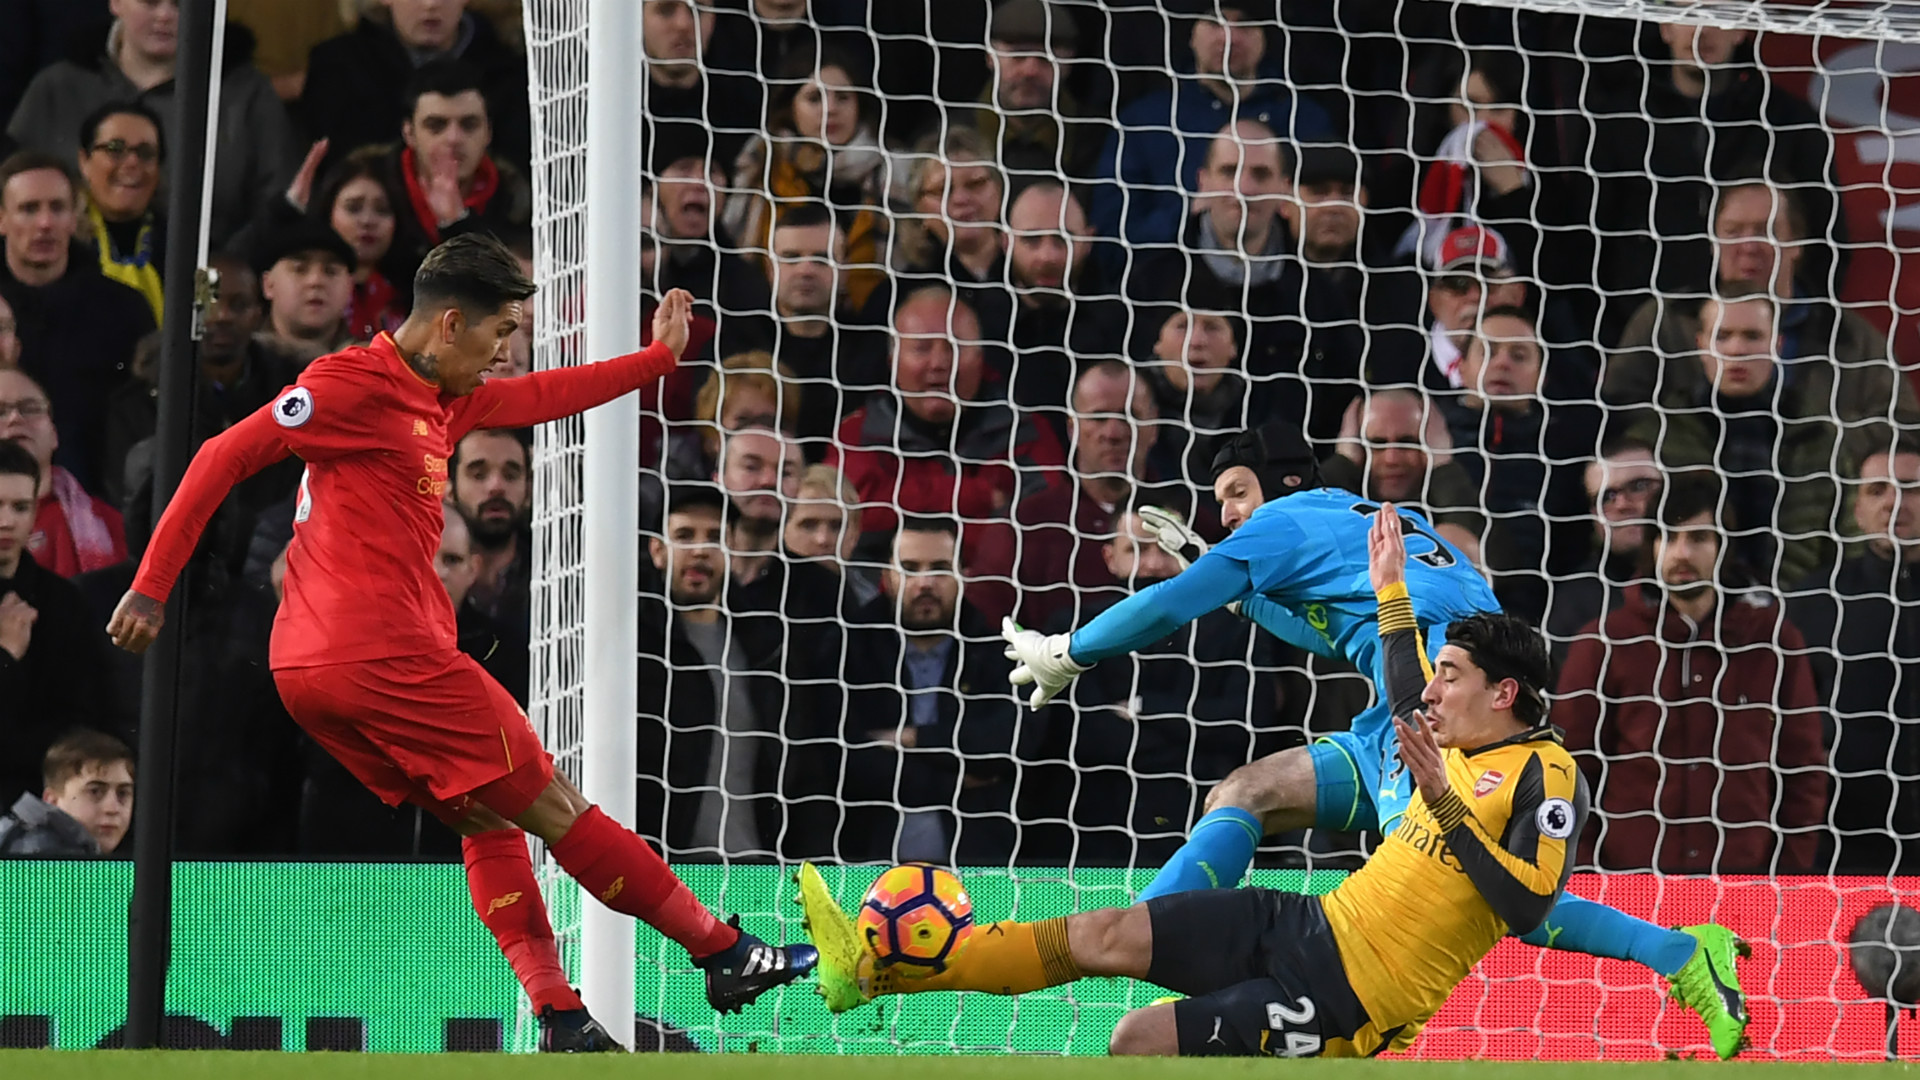 HD Firmino goal Liverpool v Arsenal